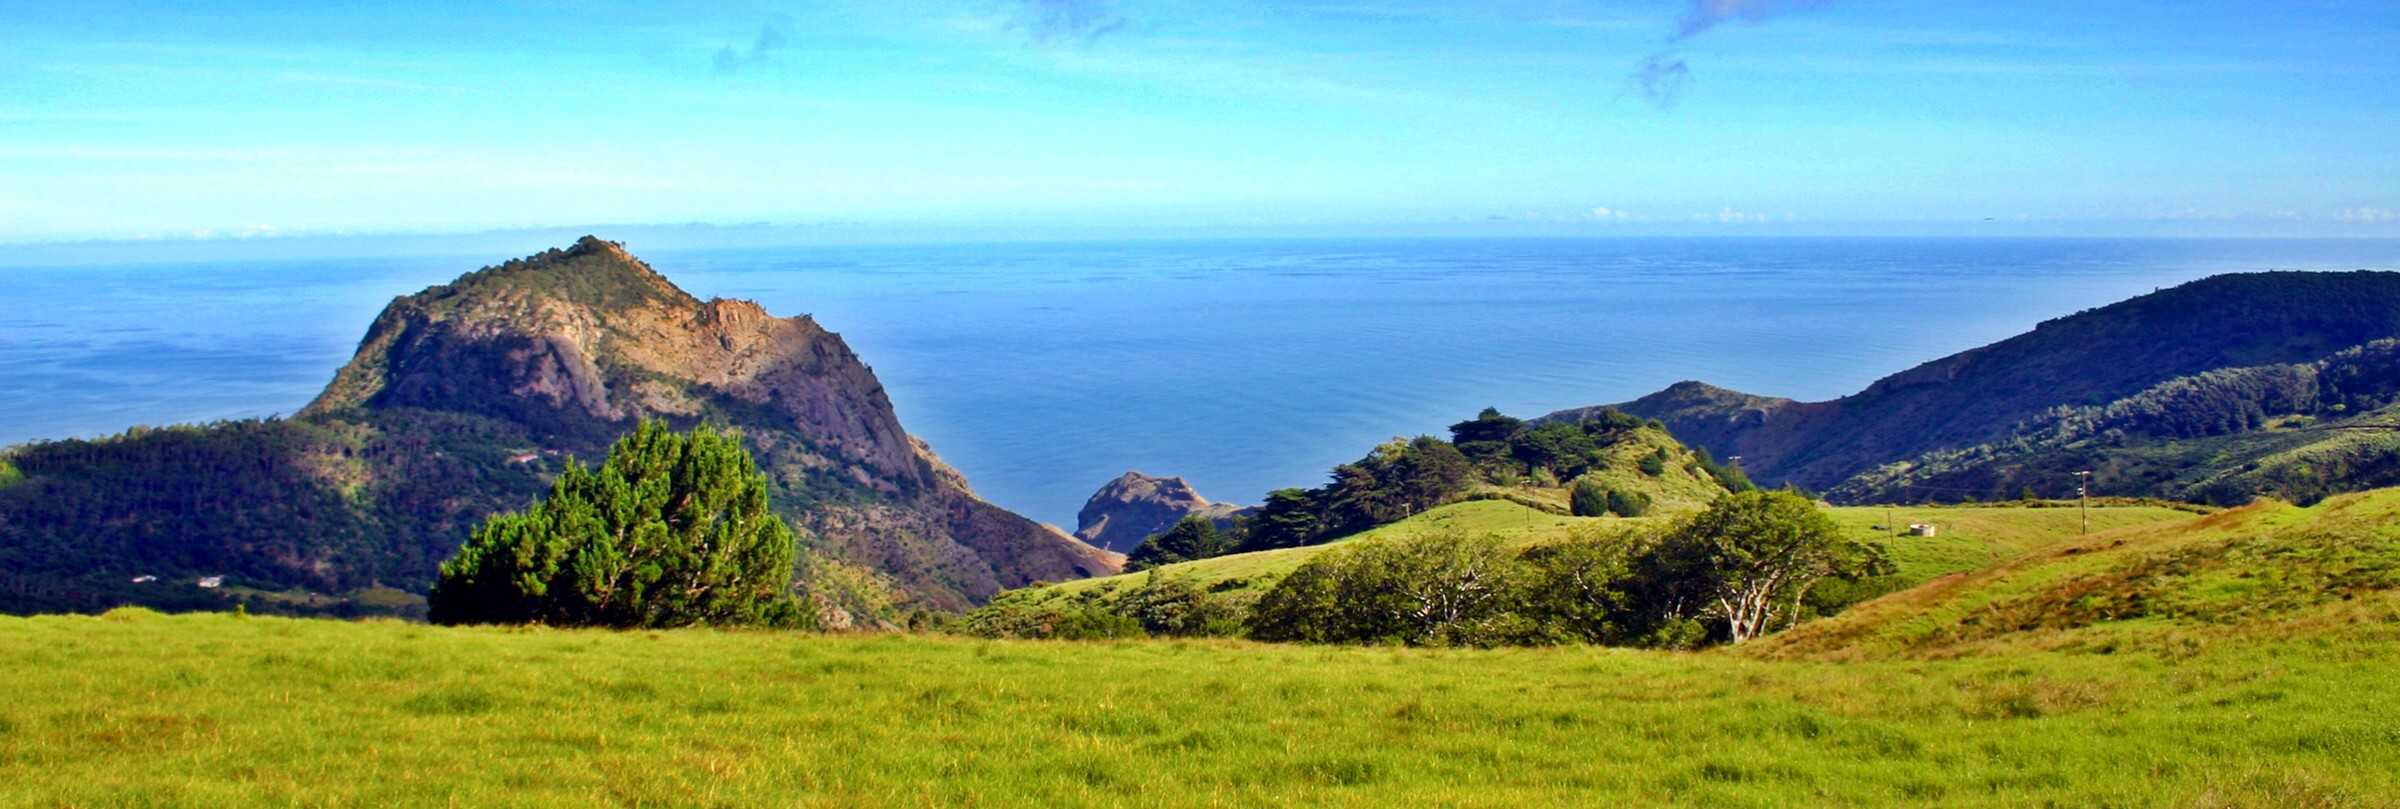 Scenic view across 'Old Woman Valley' featuring 'High Hill' Saint Helena Island Info Photography